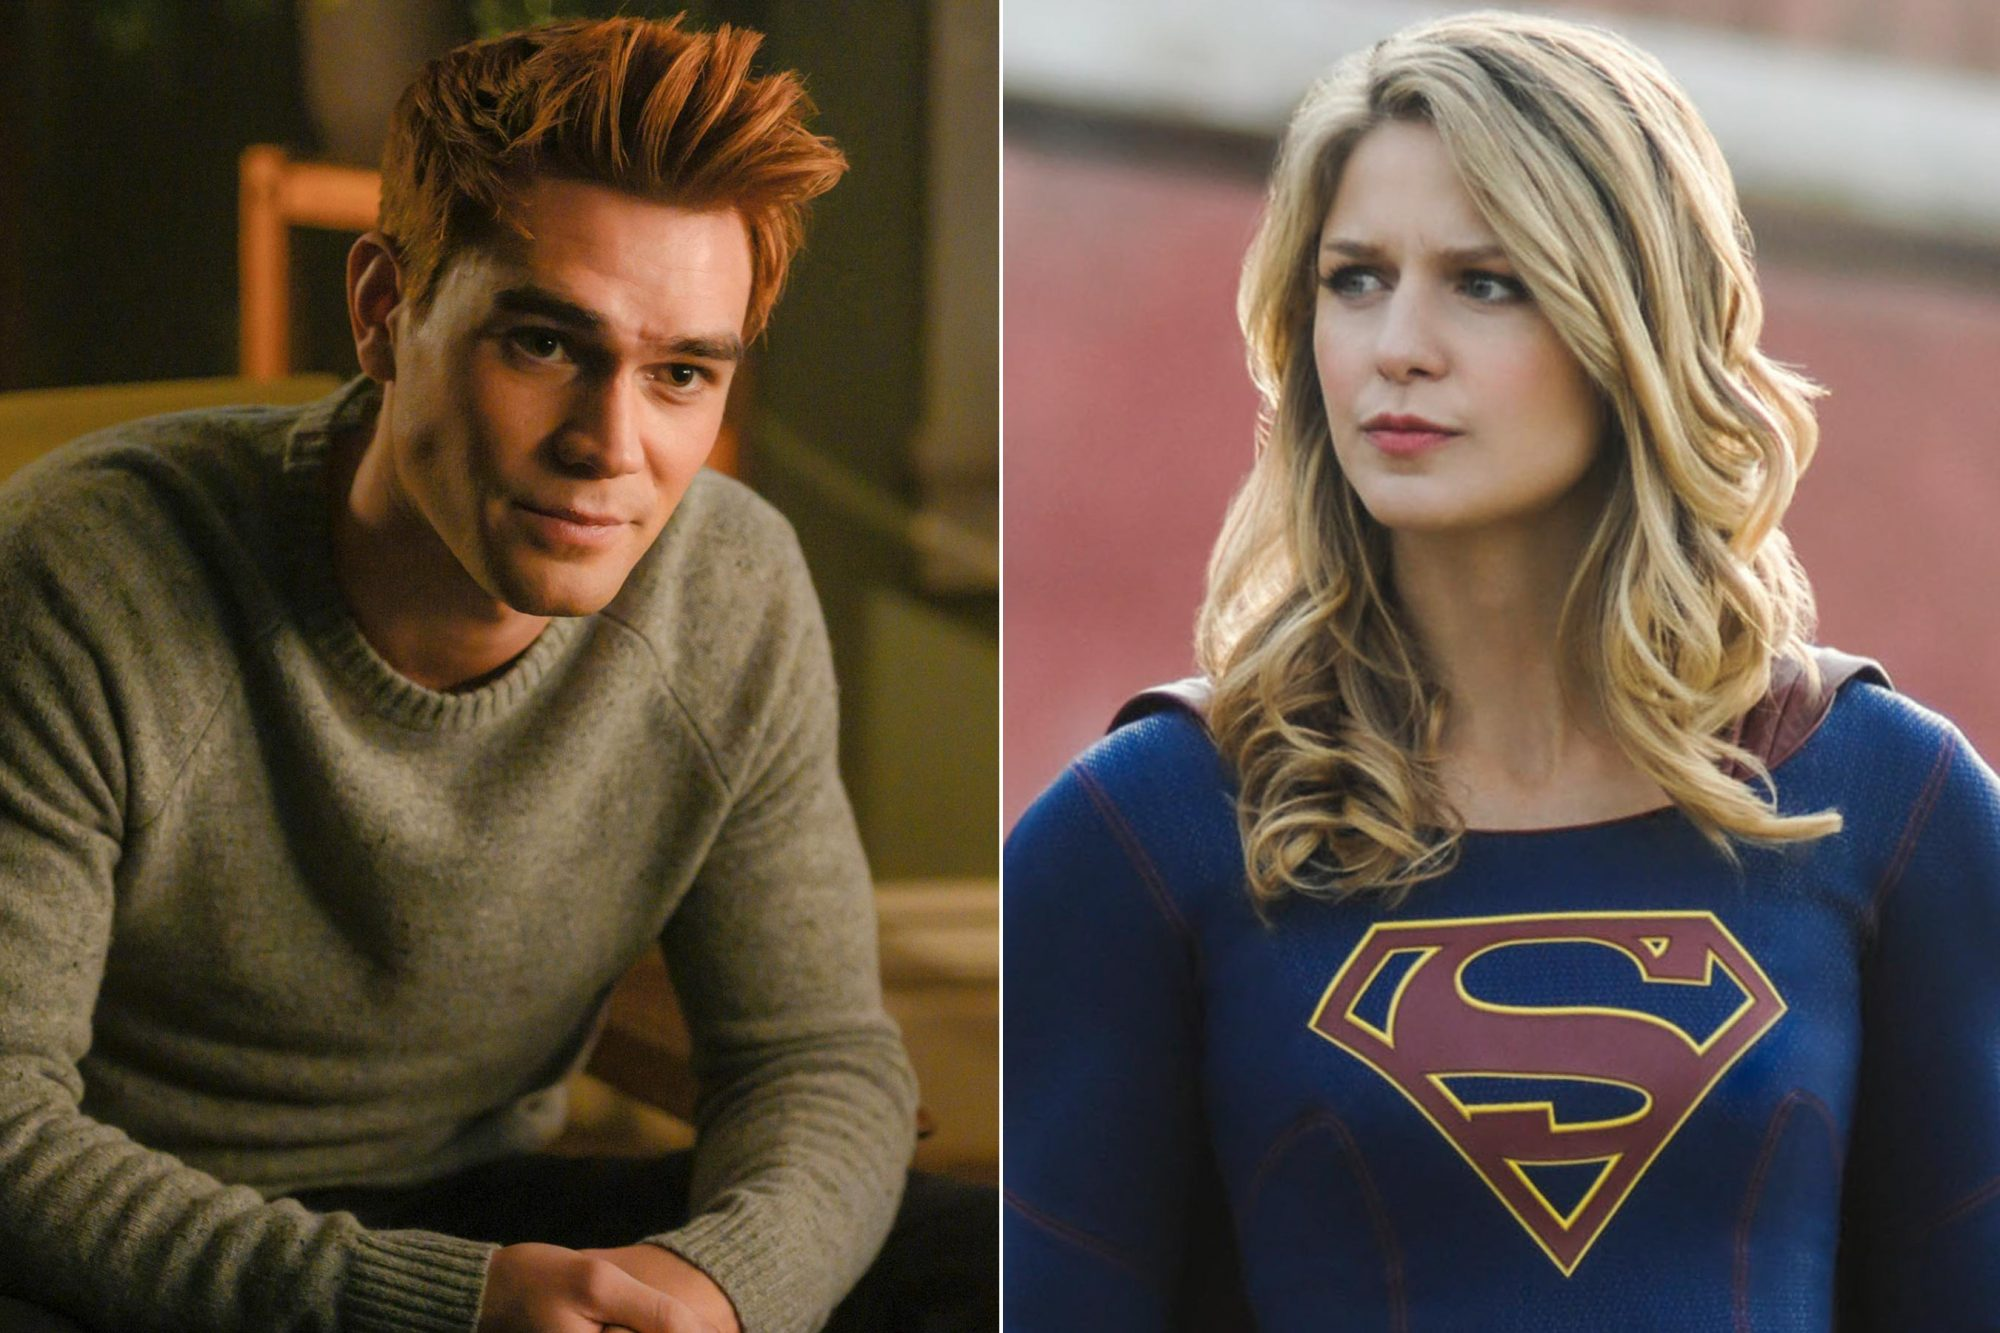 """Riverdale -- """"Chapter Fifty-Three: Jawbreaker"""" -- Image Number: RVD318a_0216.jpg -- Pictured: KJ Apa as Archie -- Photo: Diyah Pera/The CW -- © 2019 The CW Network, LLC. All rights reserved. Supergirl -- """"Blood Memory"""" -- Image Number: SPG411b_0154b.jpg -- Pictured: Melissa Benoist as Kara/Supergirl -- Photo: Sergei Bachlakov/The CW -- © 2019 The CW Network, LLC. All Rights Reserved."""